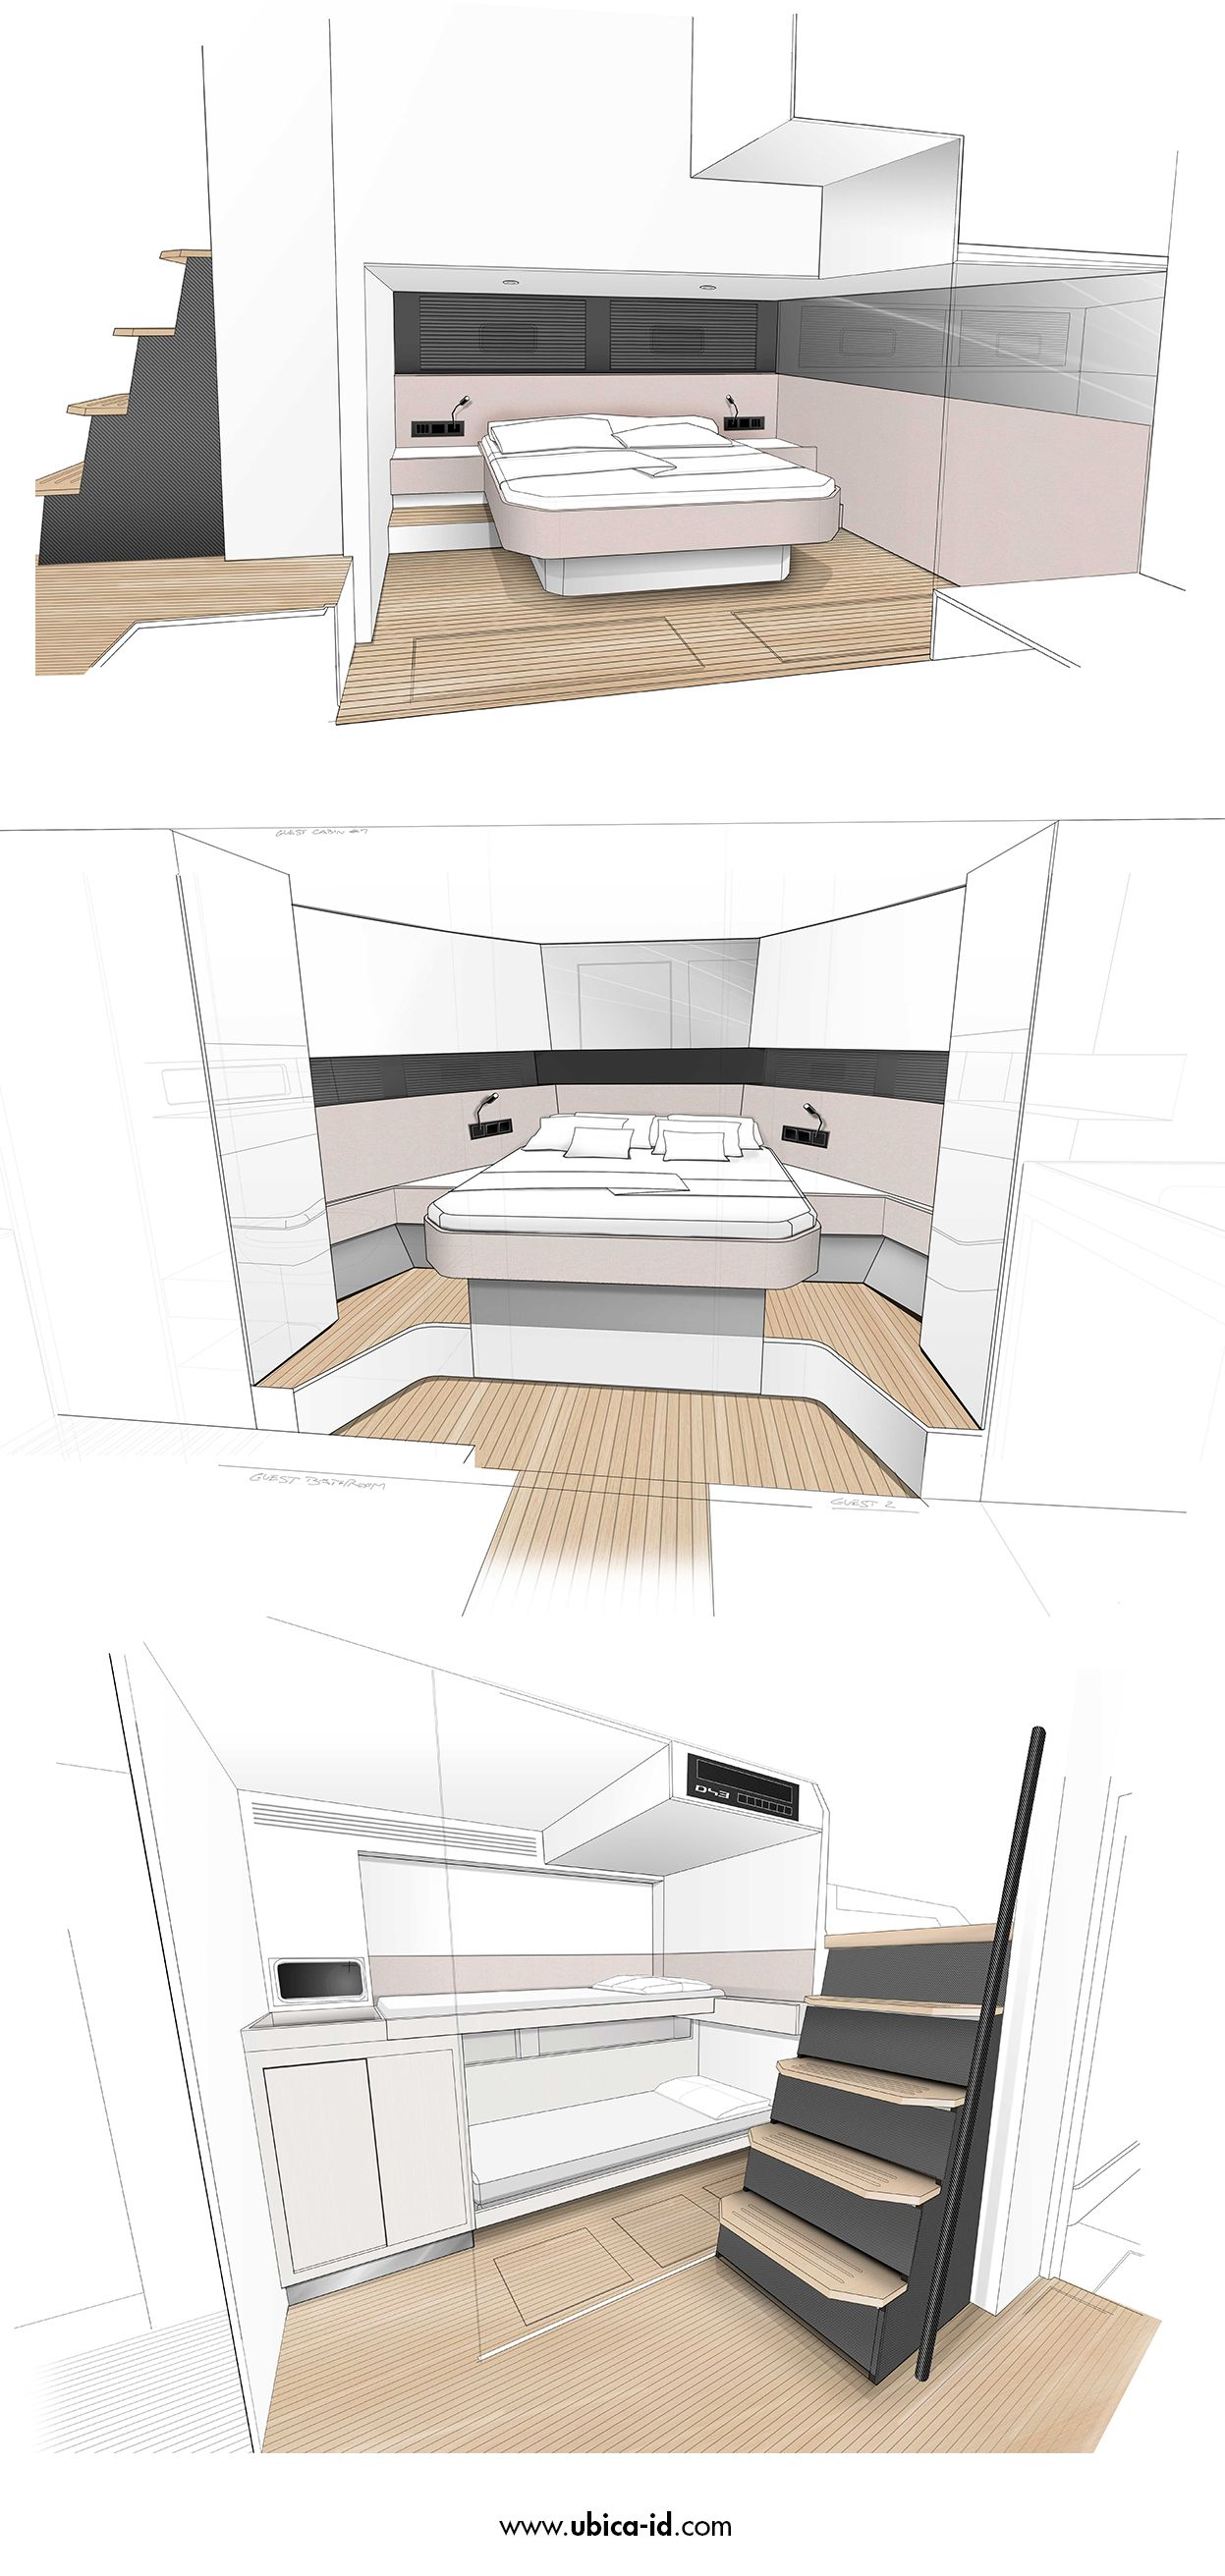 Inicial sketches for de antonio yachts d43 interior for Progetti design interni